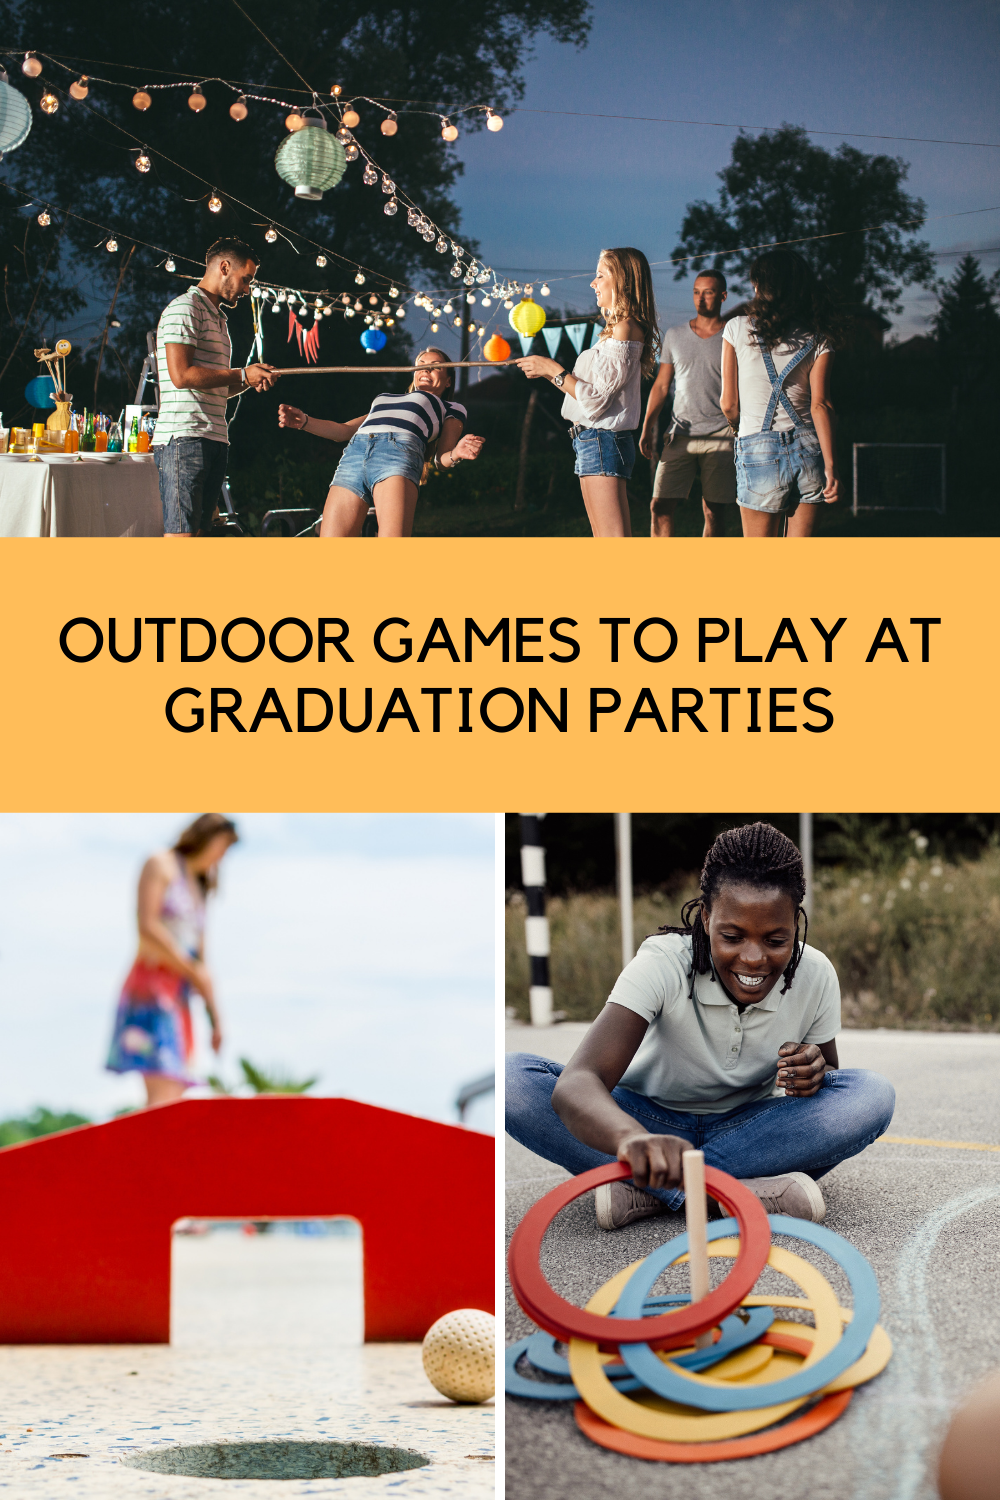 Outdoor Game Ideas For Graduation Parties For Teens